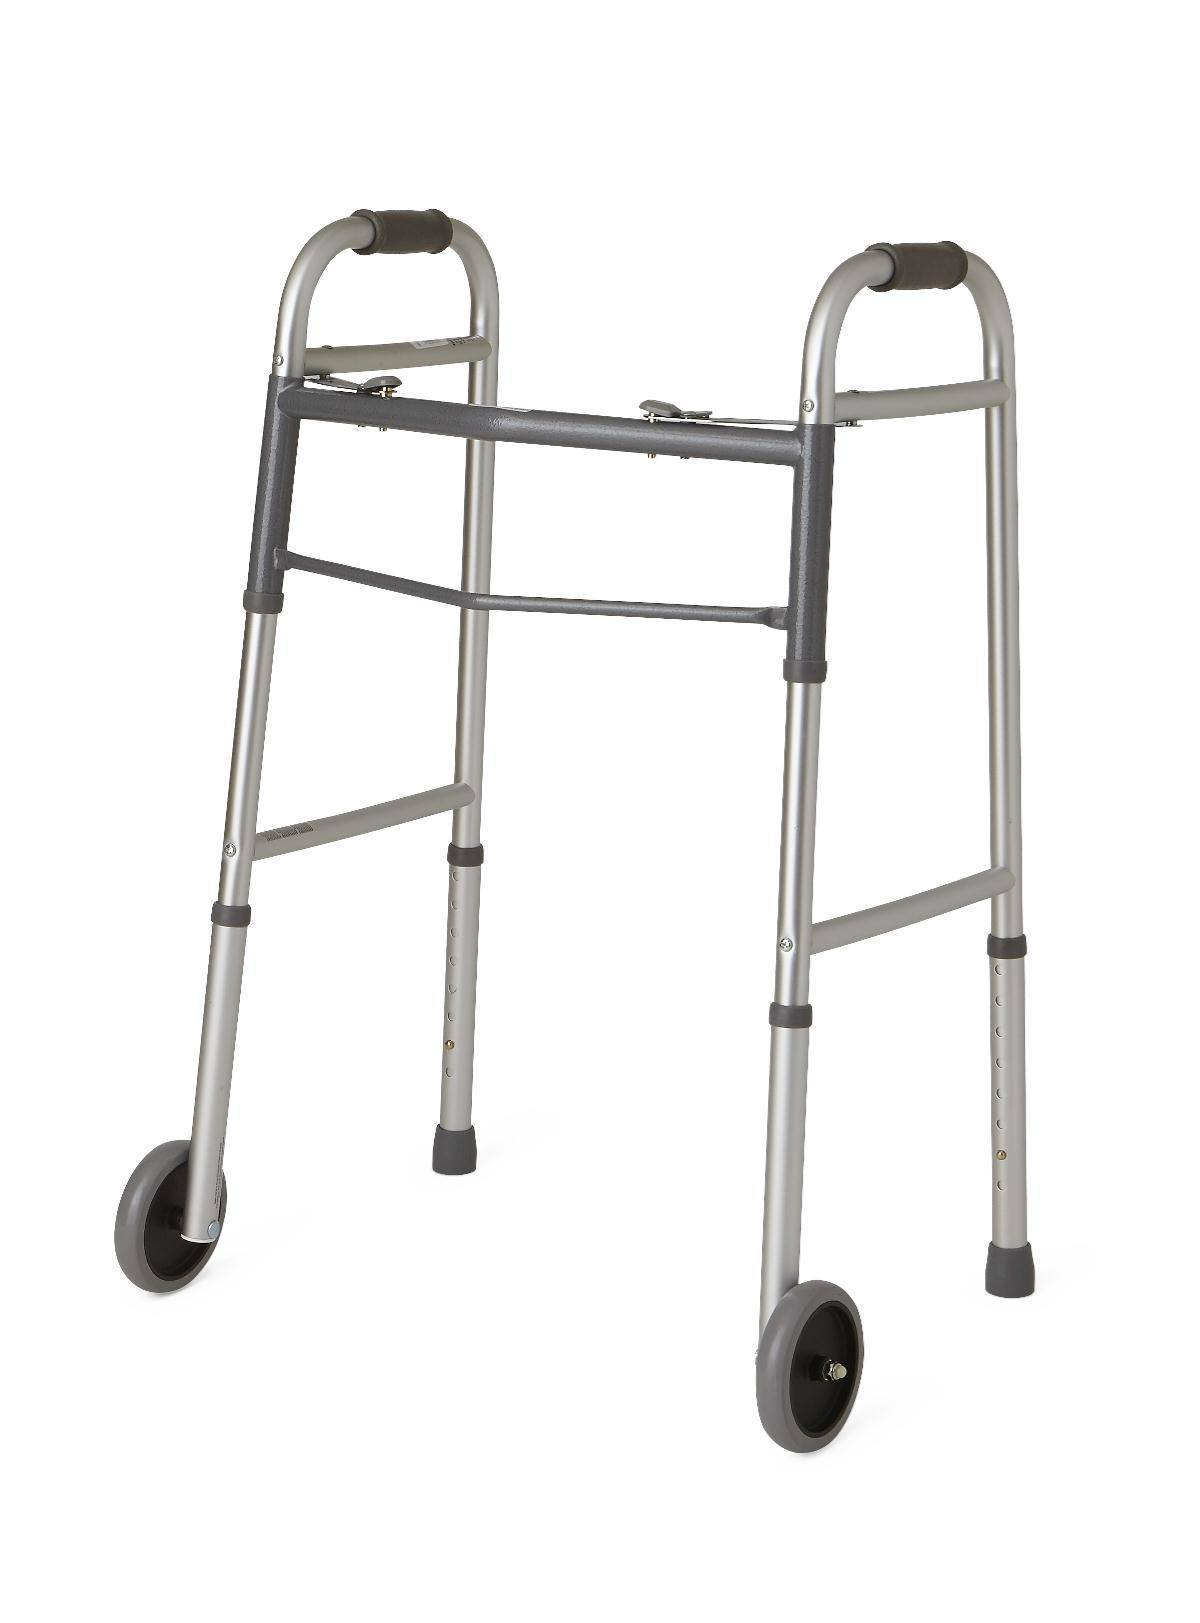 Surprising Medline Guardian Aluminum Folding Walker Gmtry Best Dining Table And Chair Ideas Images Gmtryco